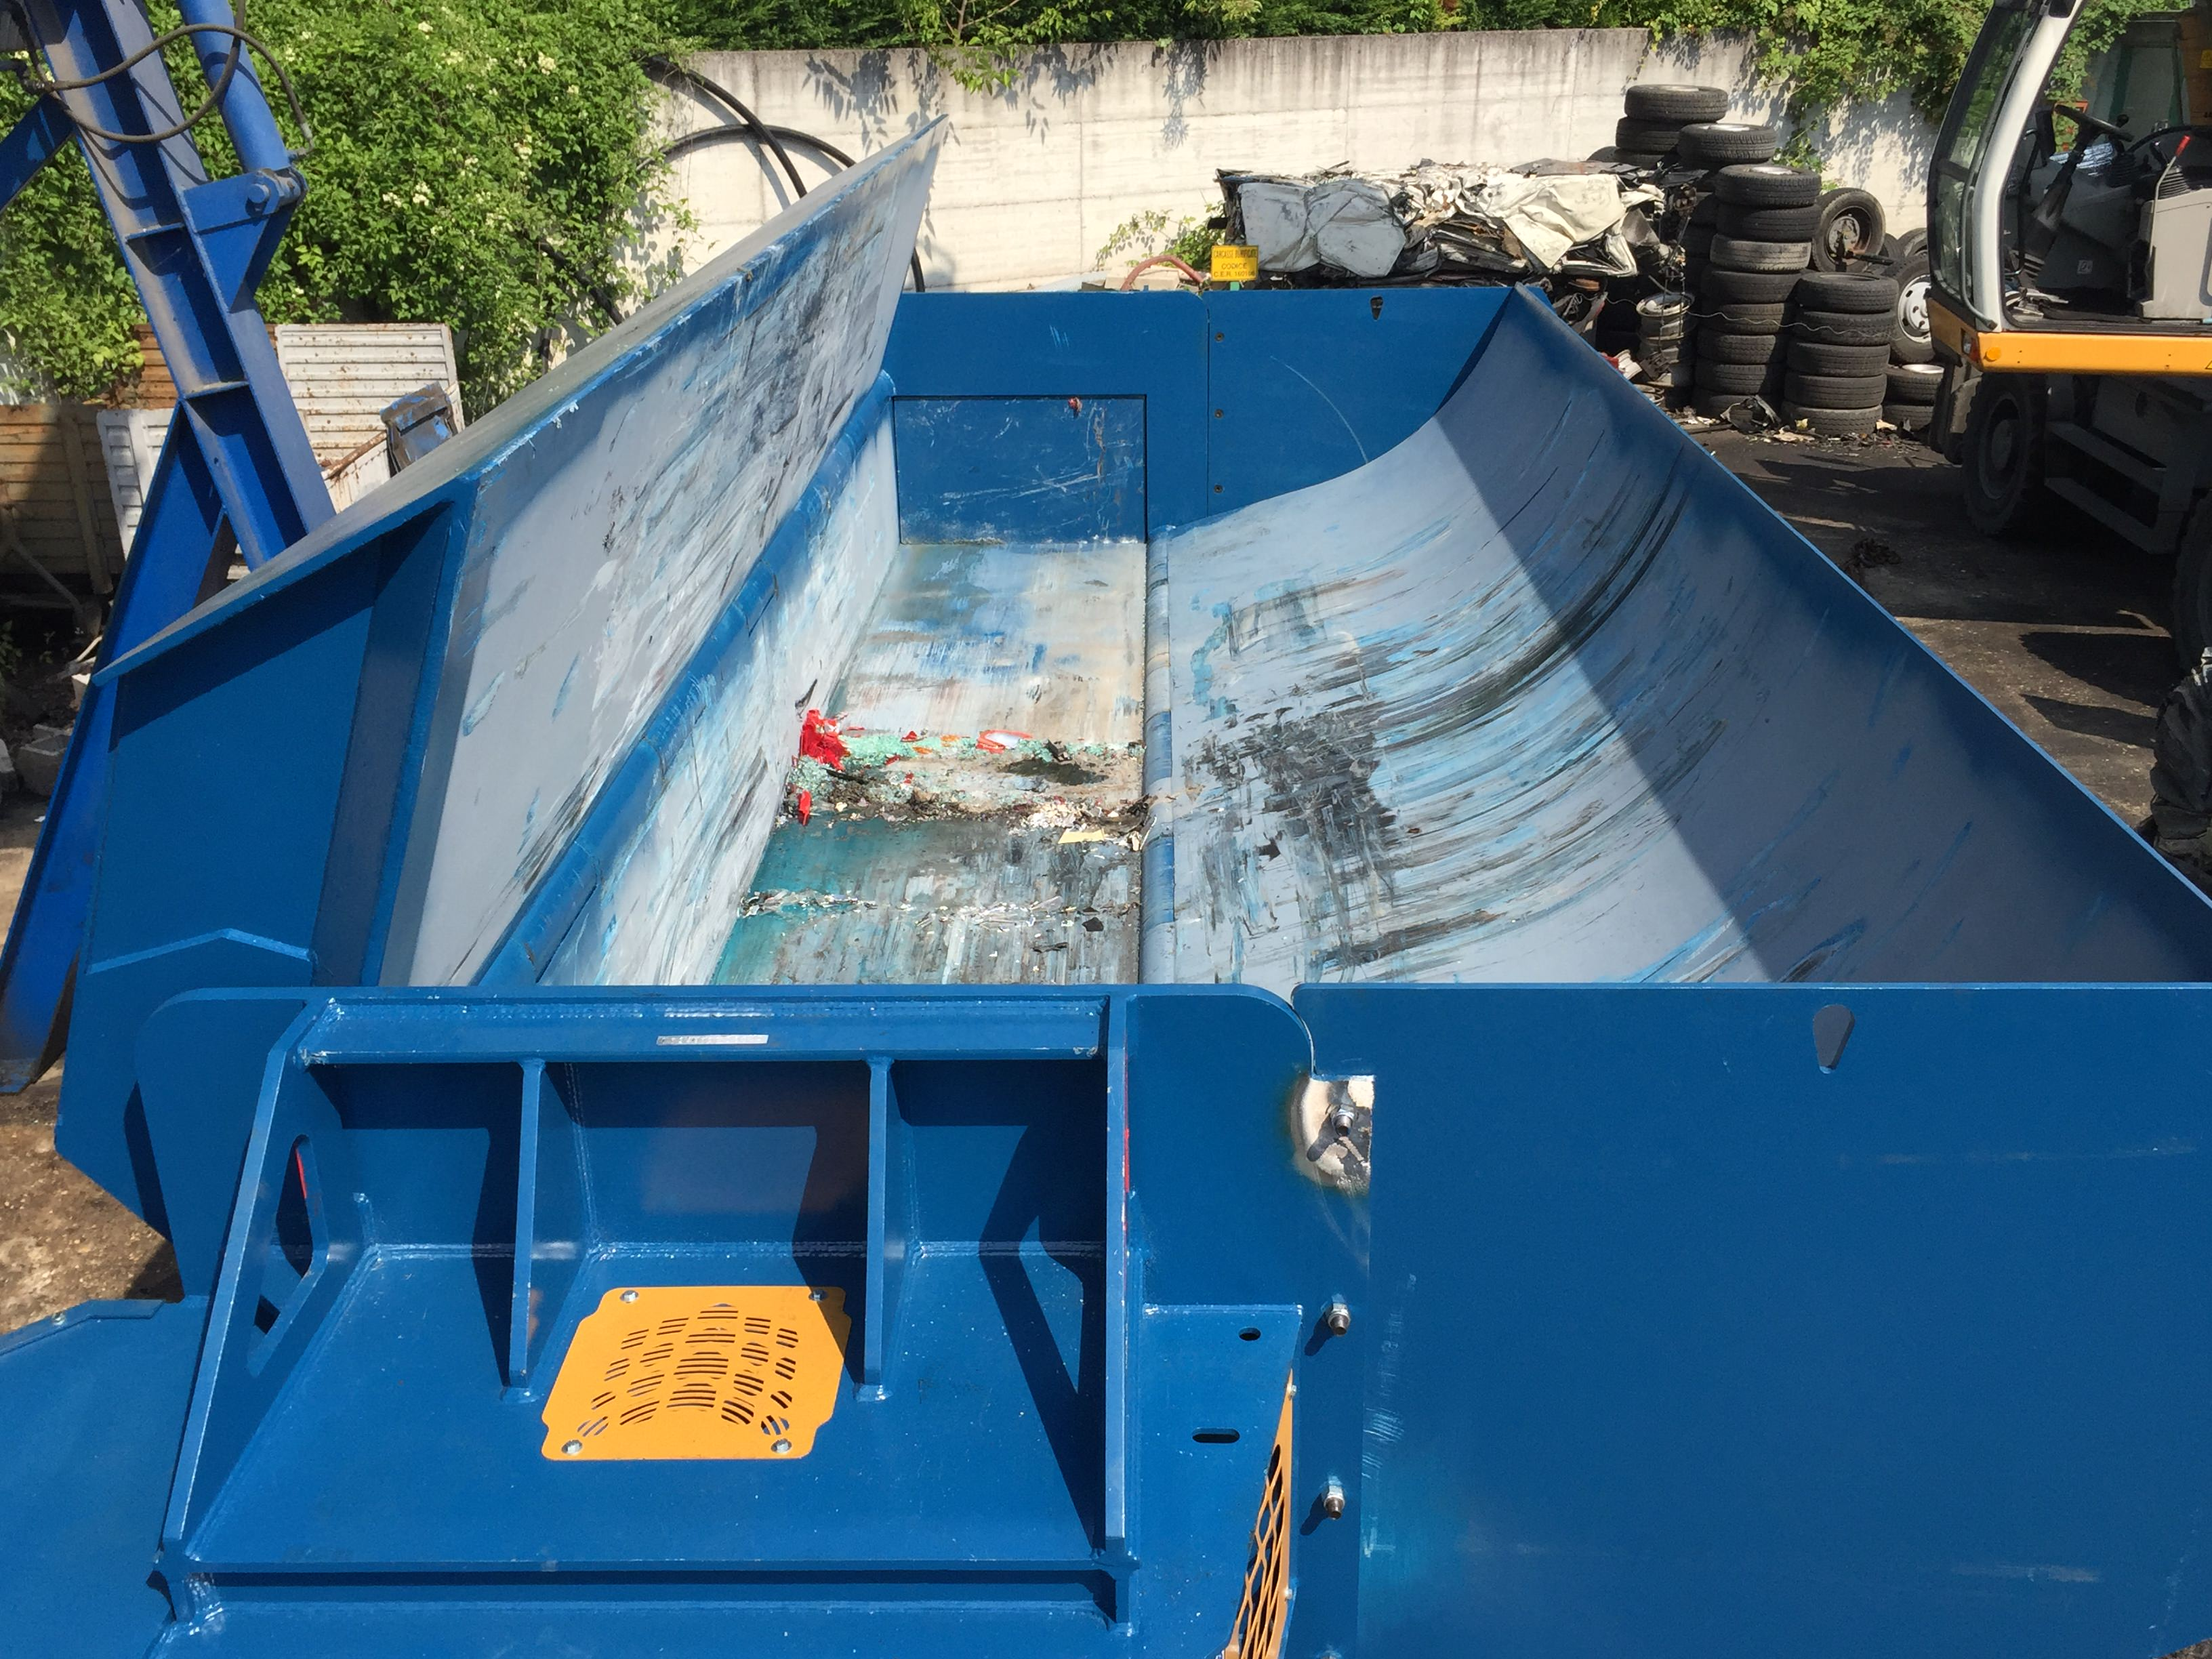 Balers Idromec S6000 for metals scrap and junk car